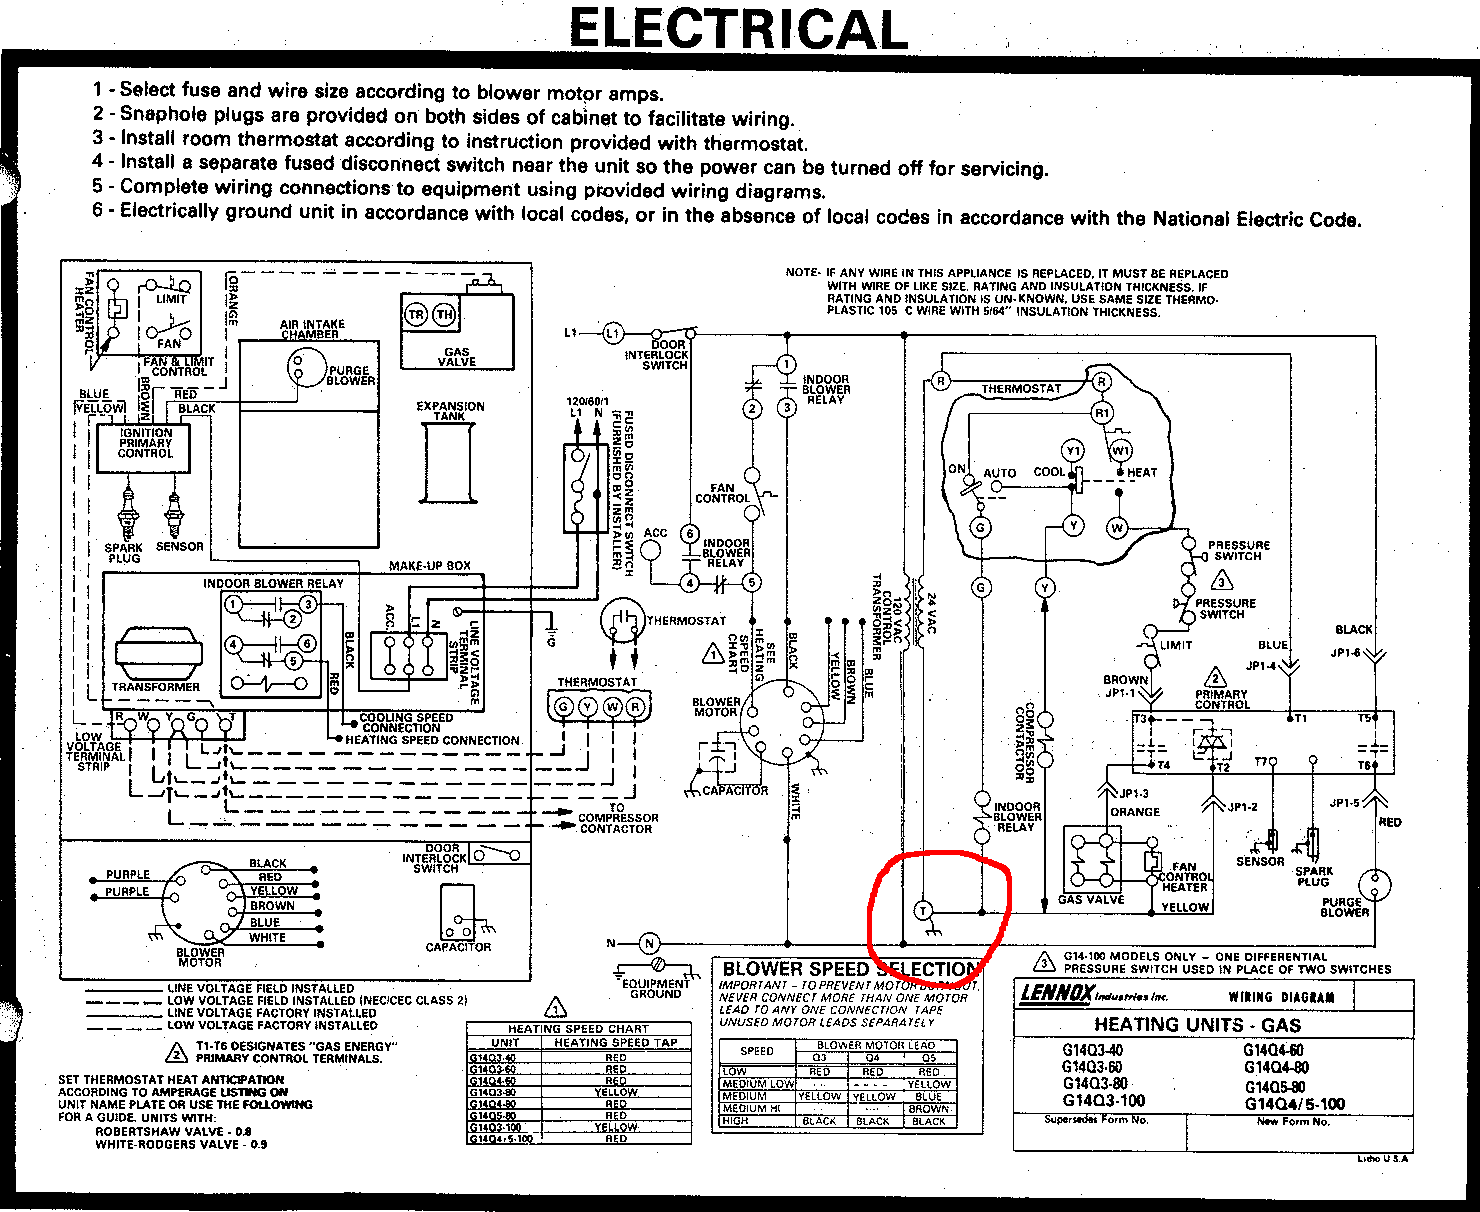 hight resolution of furnace wiring diagram diagram data schema honeywell furnace thermostat wiring diagram honeywell furnace wiring diagram